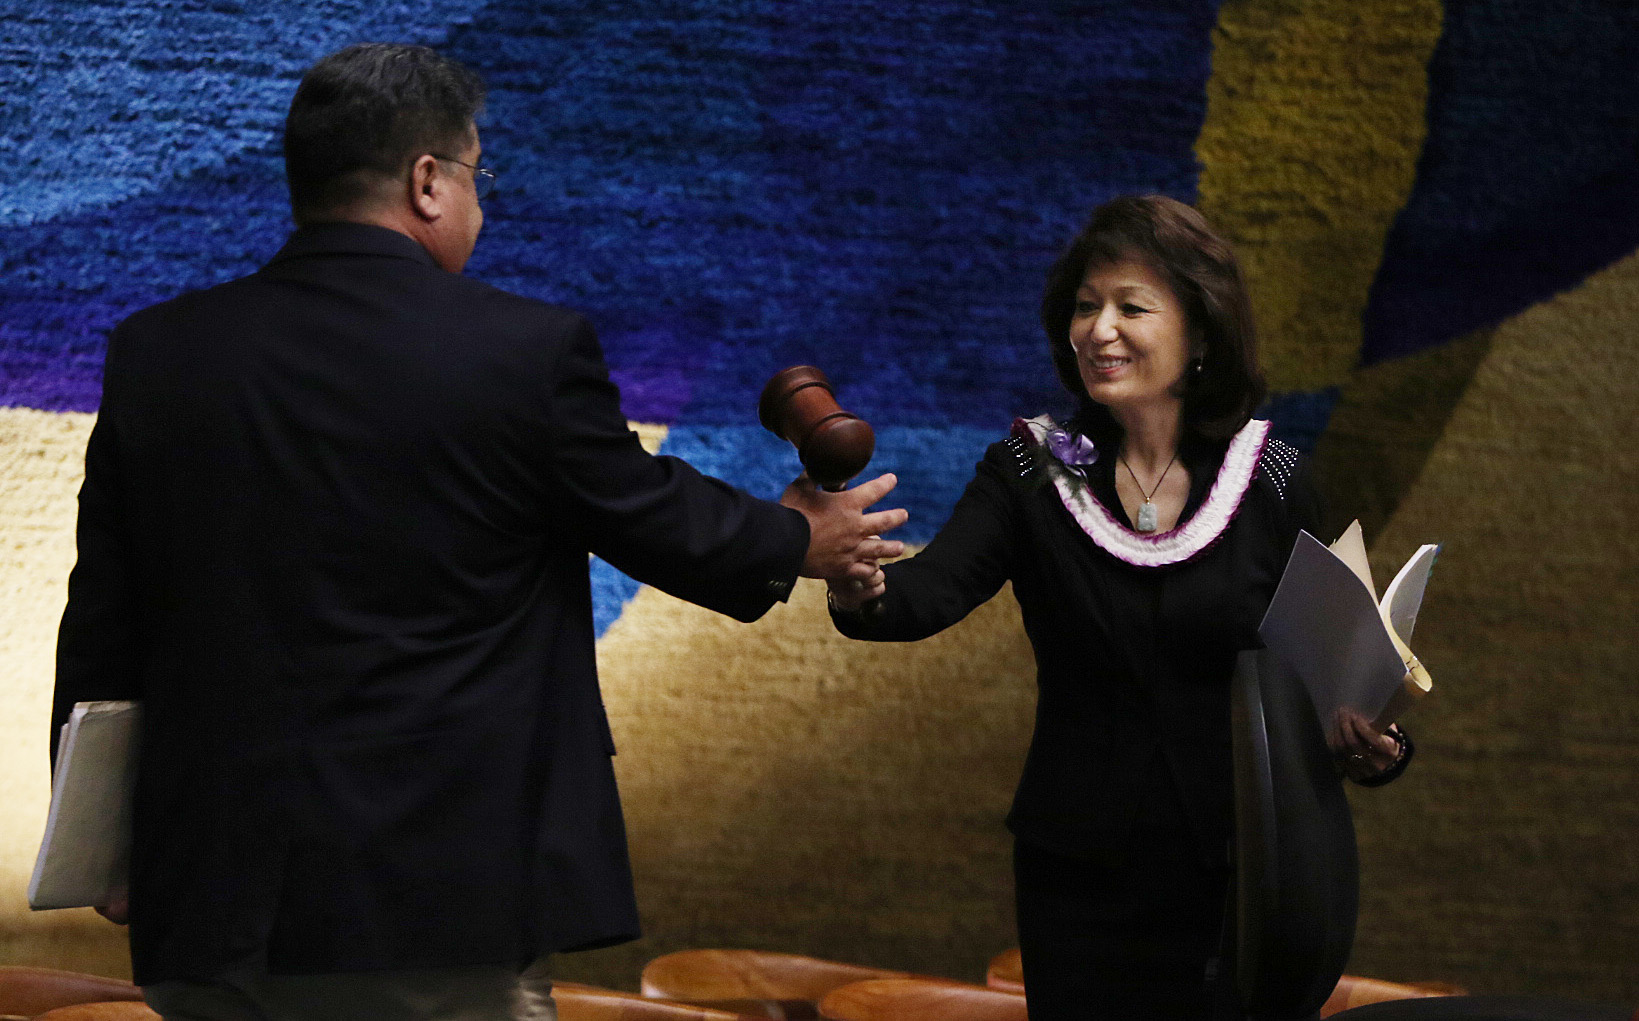 <p>Days later, Donna Kim herself is ousted as Senate president in a coup just before the end of the legislative session. She hands the gavel to the new president, Sen. Ron Kouchi of Kauai. The shakeup also affects the Senate's committee alignment and results in several chairmanships changing hands.</p>